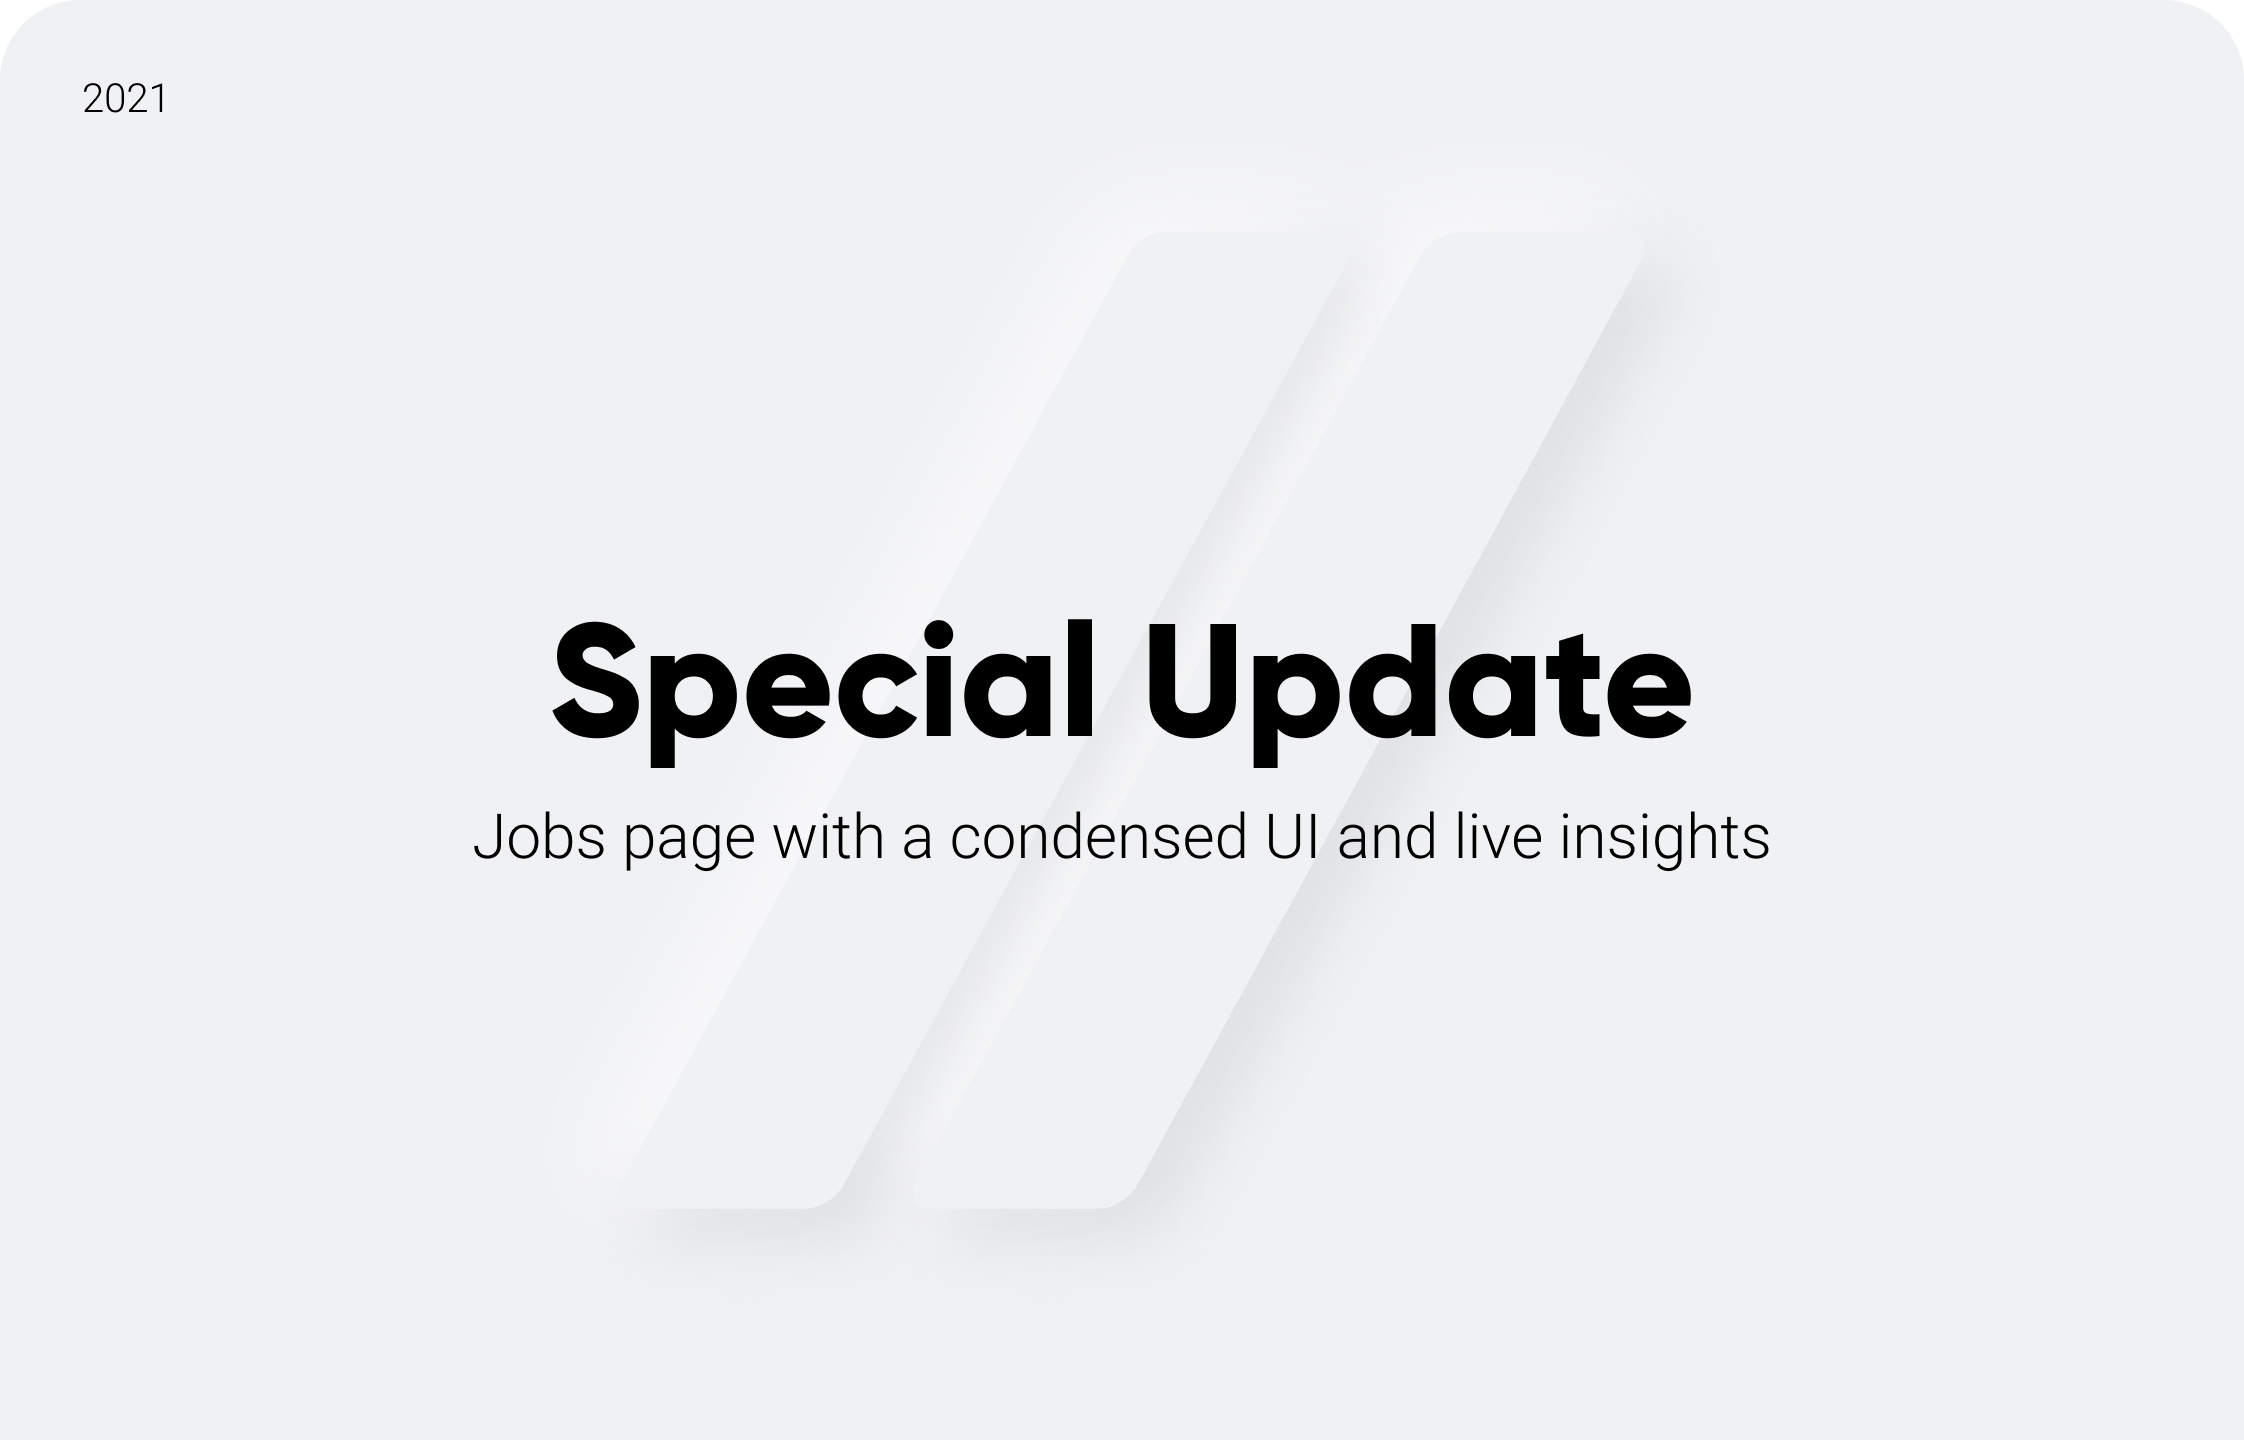 Special Update: Jobs Page